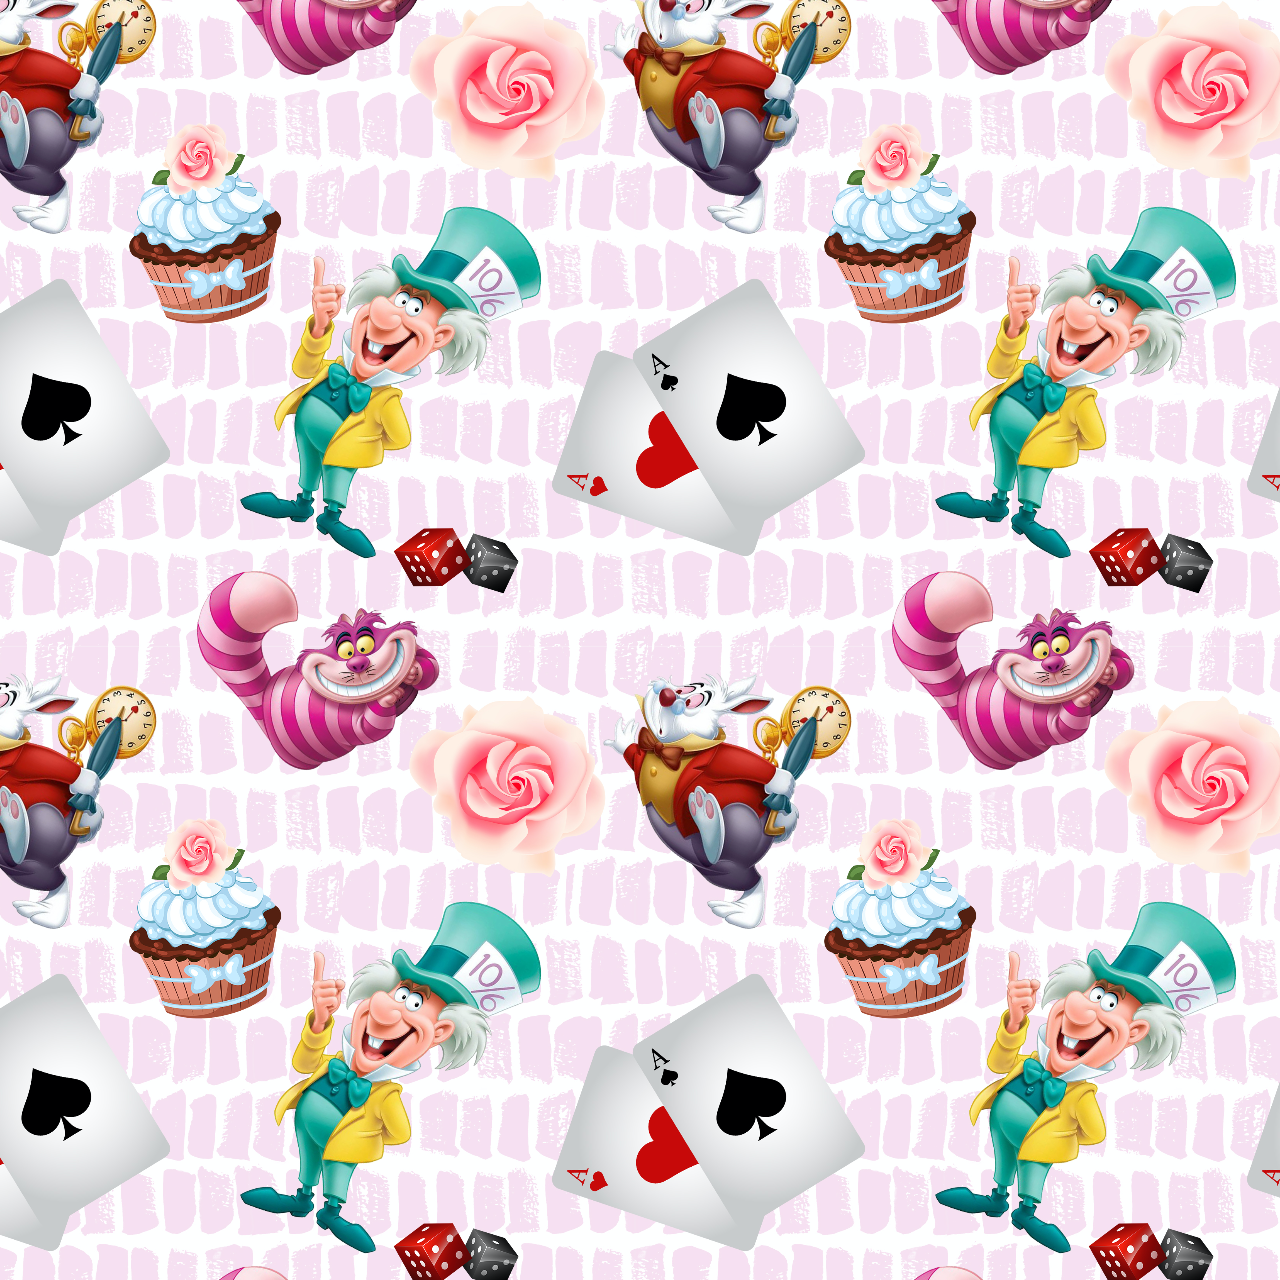 PRE ORDER - Wonderland Main Pink - Digital Fabric Print